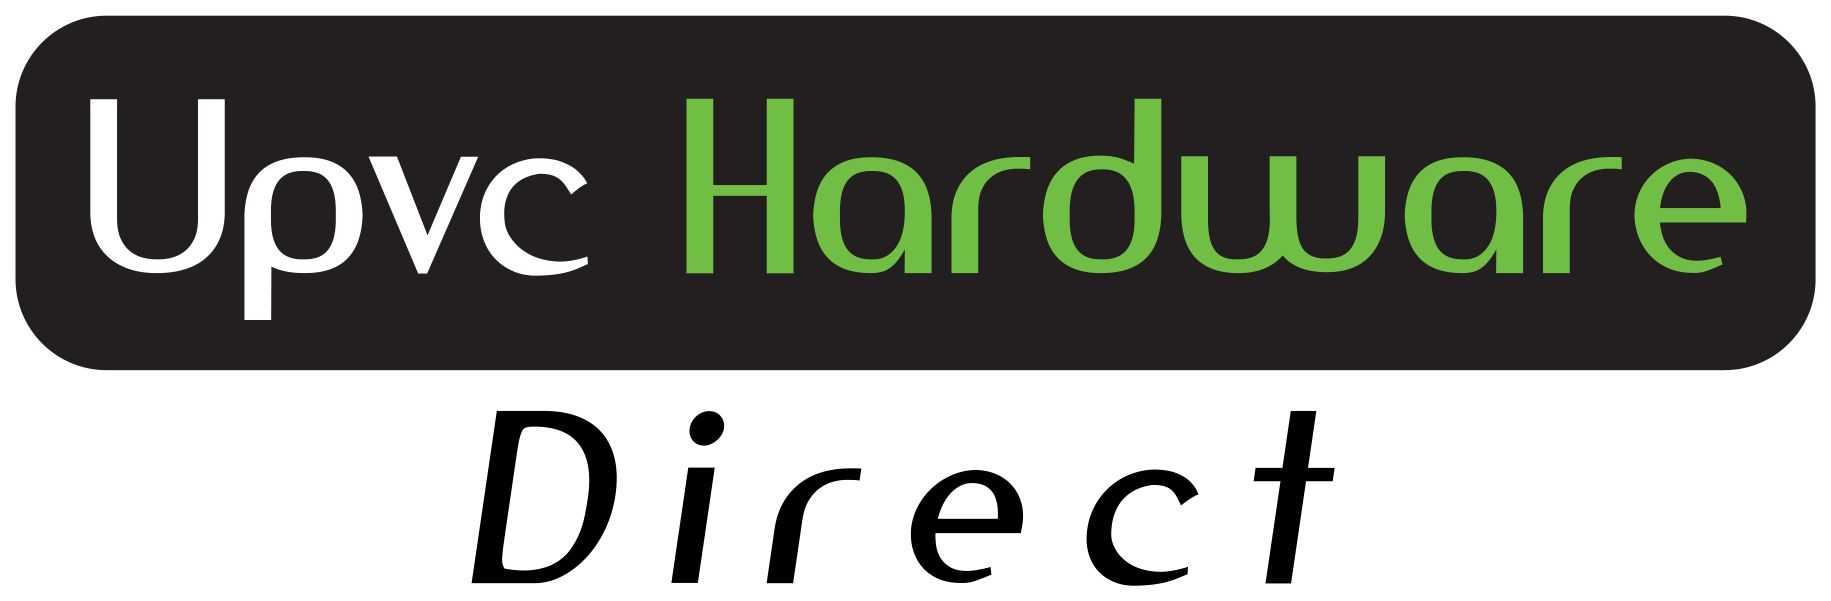 Upvc Hardware Direct